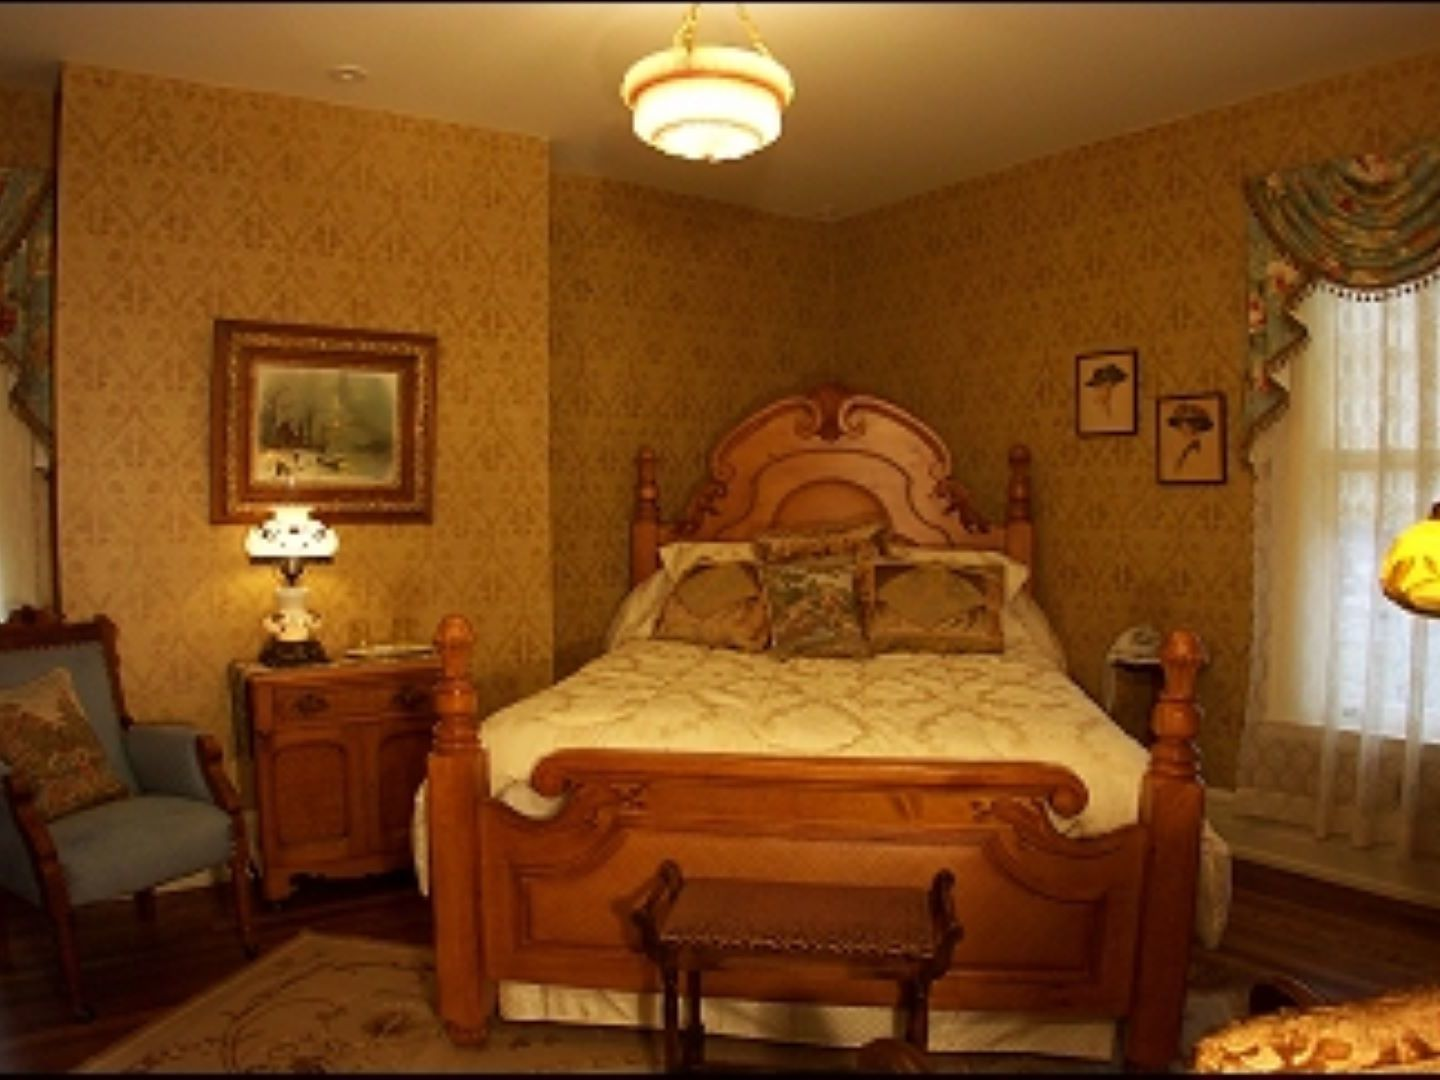 A bedroom with a bed and desk in a room at Antiquities' Wellington Inn Bed & Breakfast.